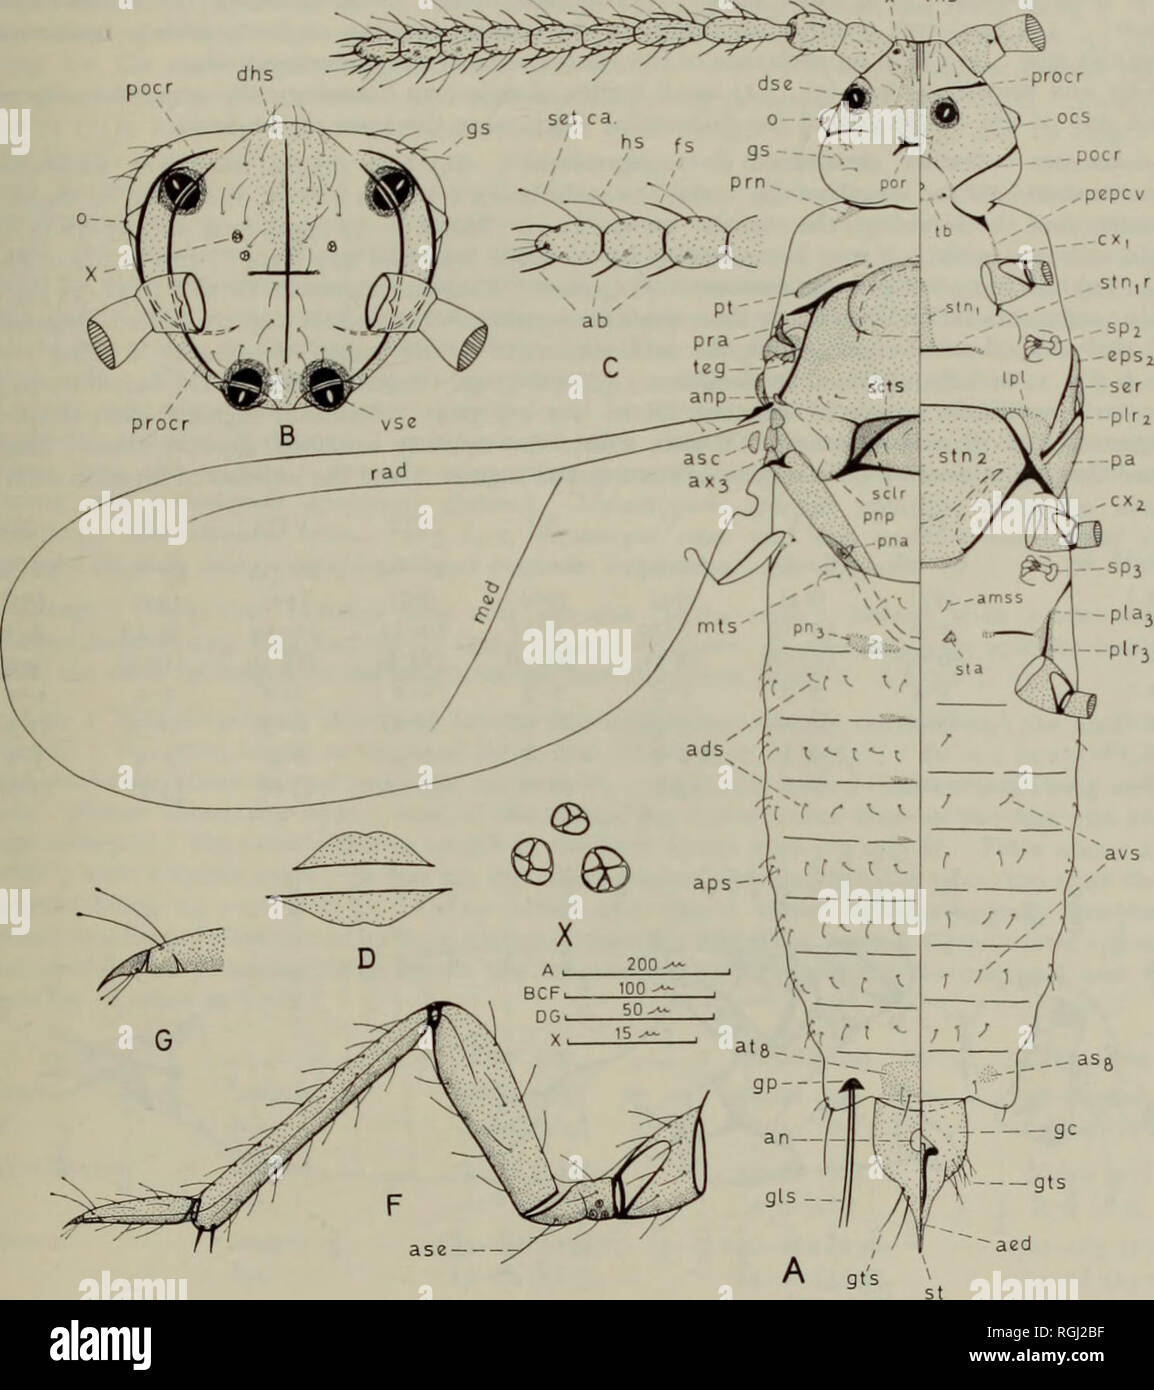 hight resolution of apex occipital diagram wiring diagrams schemabulletin of the british museum natural history entom supp